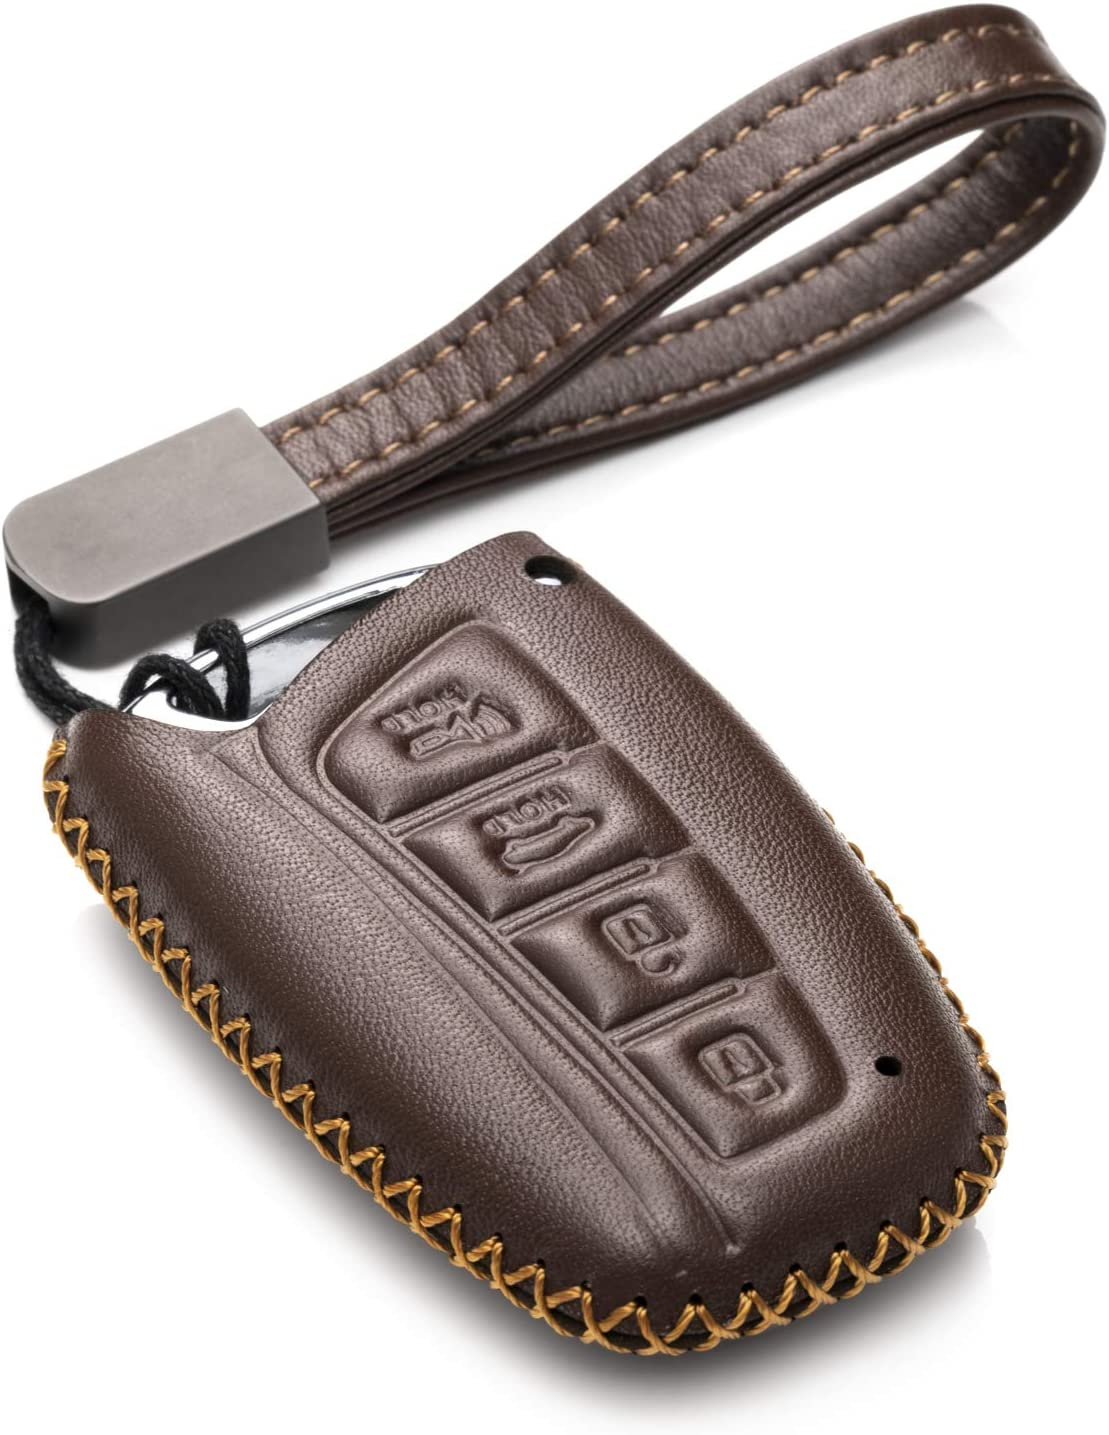 4 Buttons, Brown Vitodeco Genuine Leather Keyless Smart Key Fob Case Cover with Key Chain for 2013-2017 Hyundai Santa FE